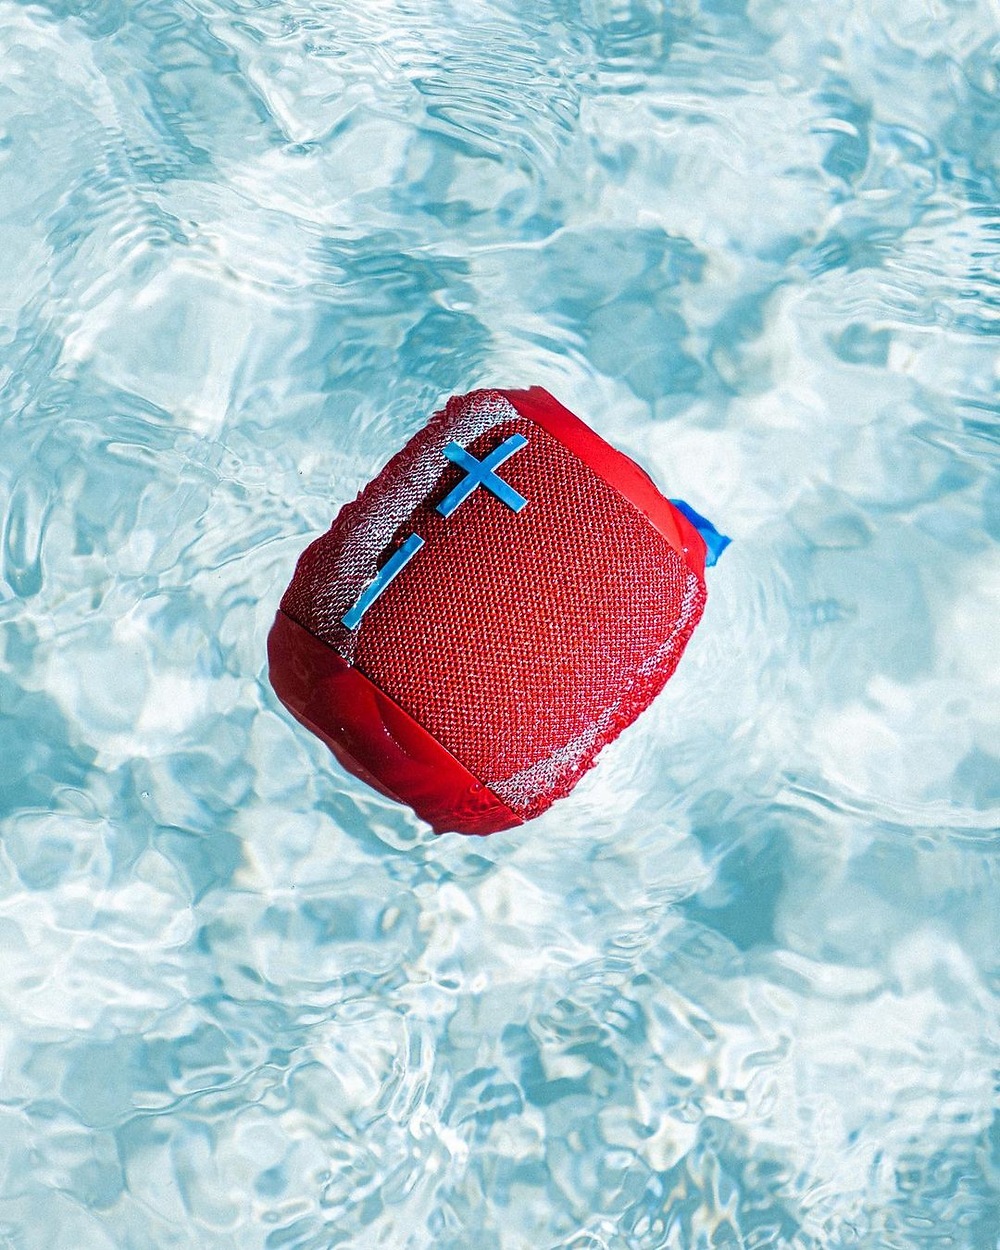 red bluetooth headphones floating in clear blue water